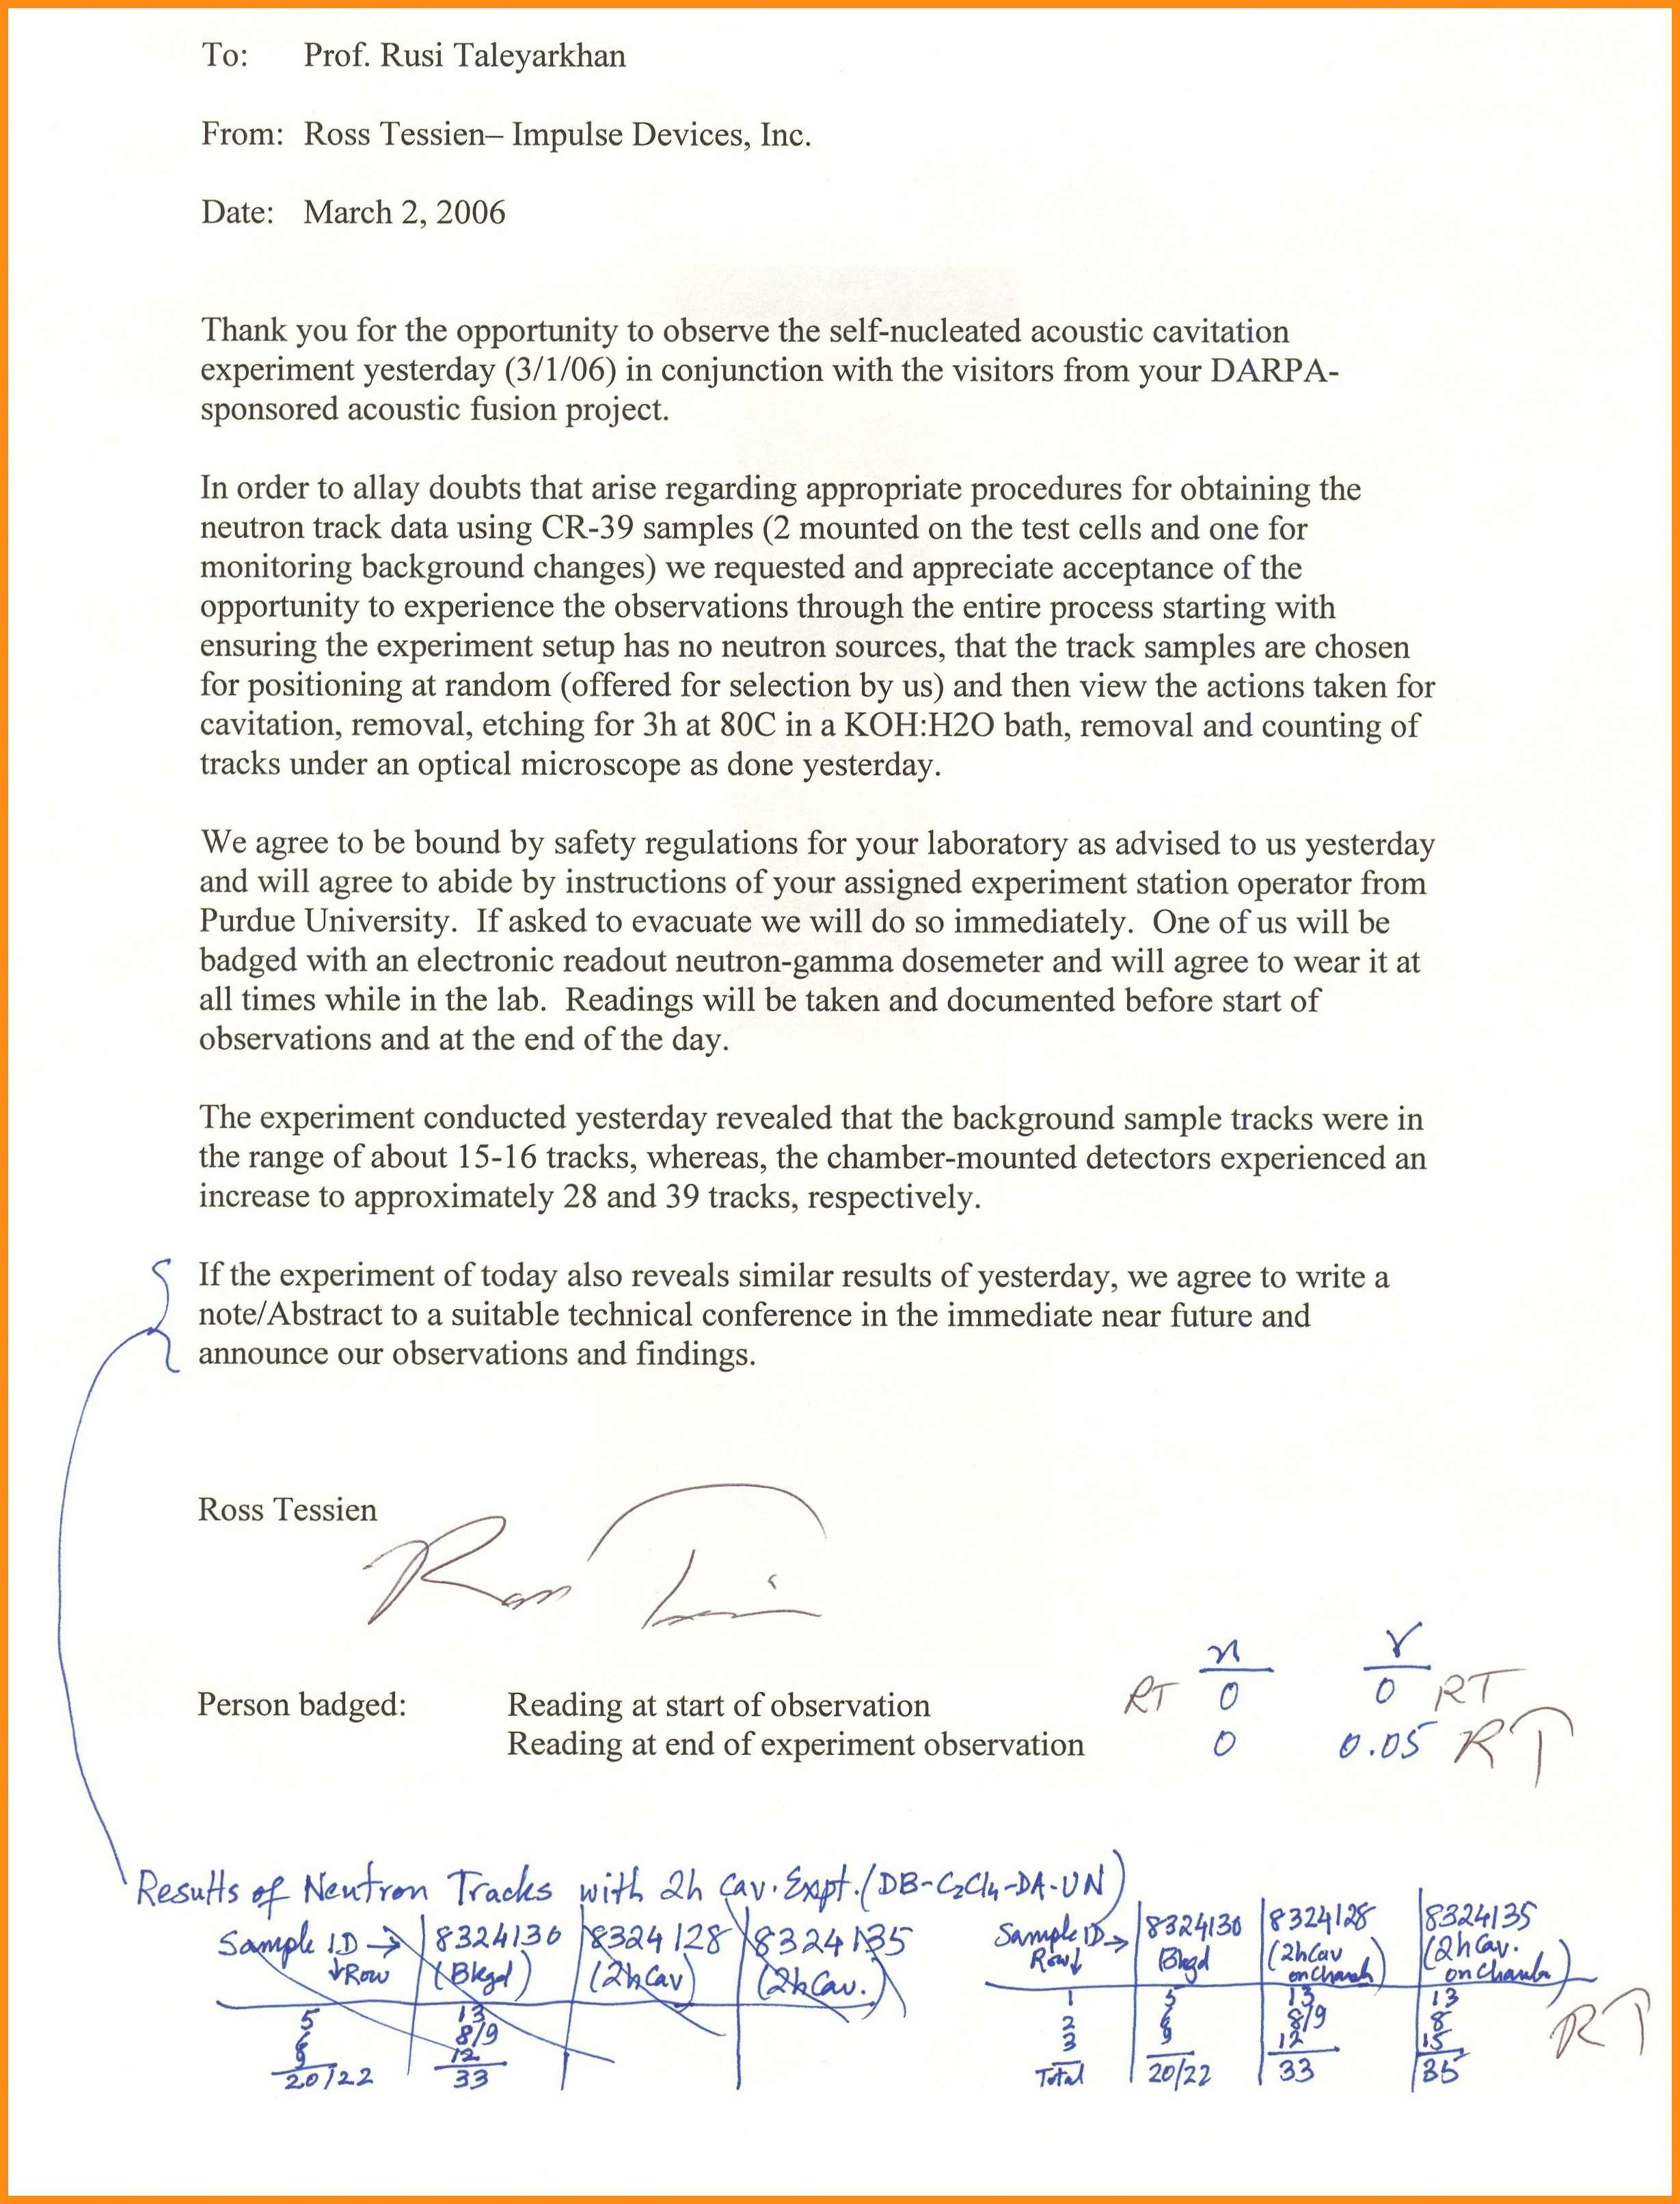 25+ Affidavit of support sample letter for canada ideas in 2021